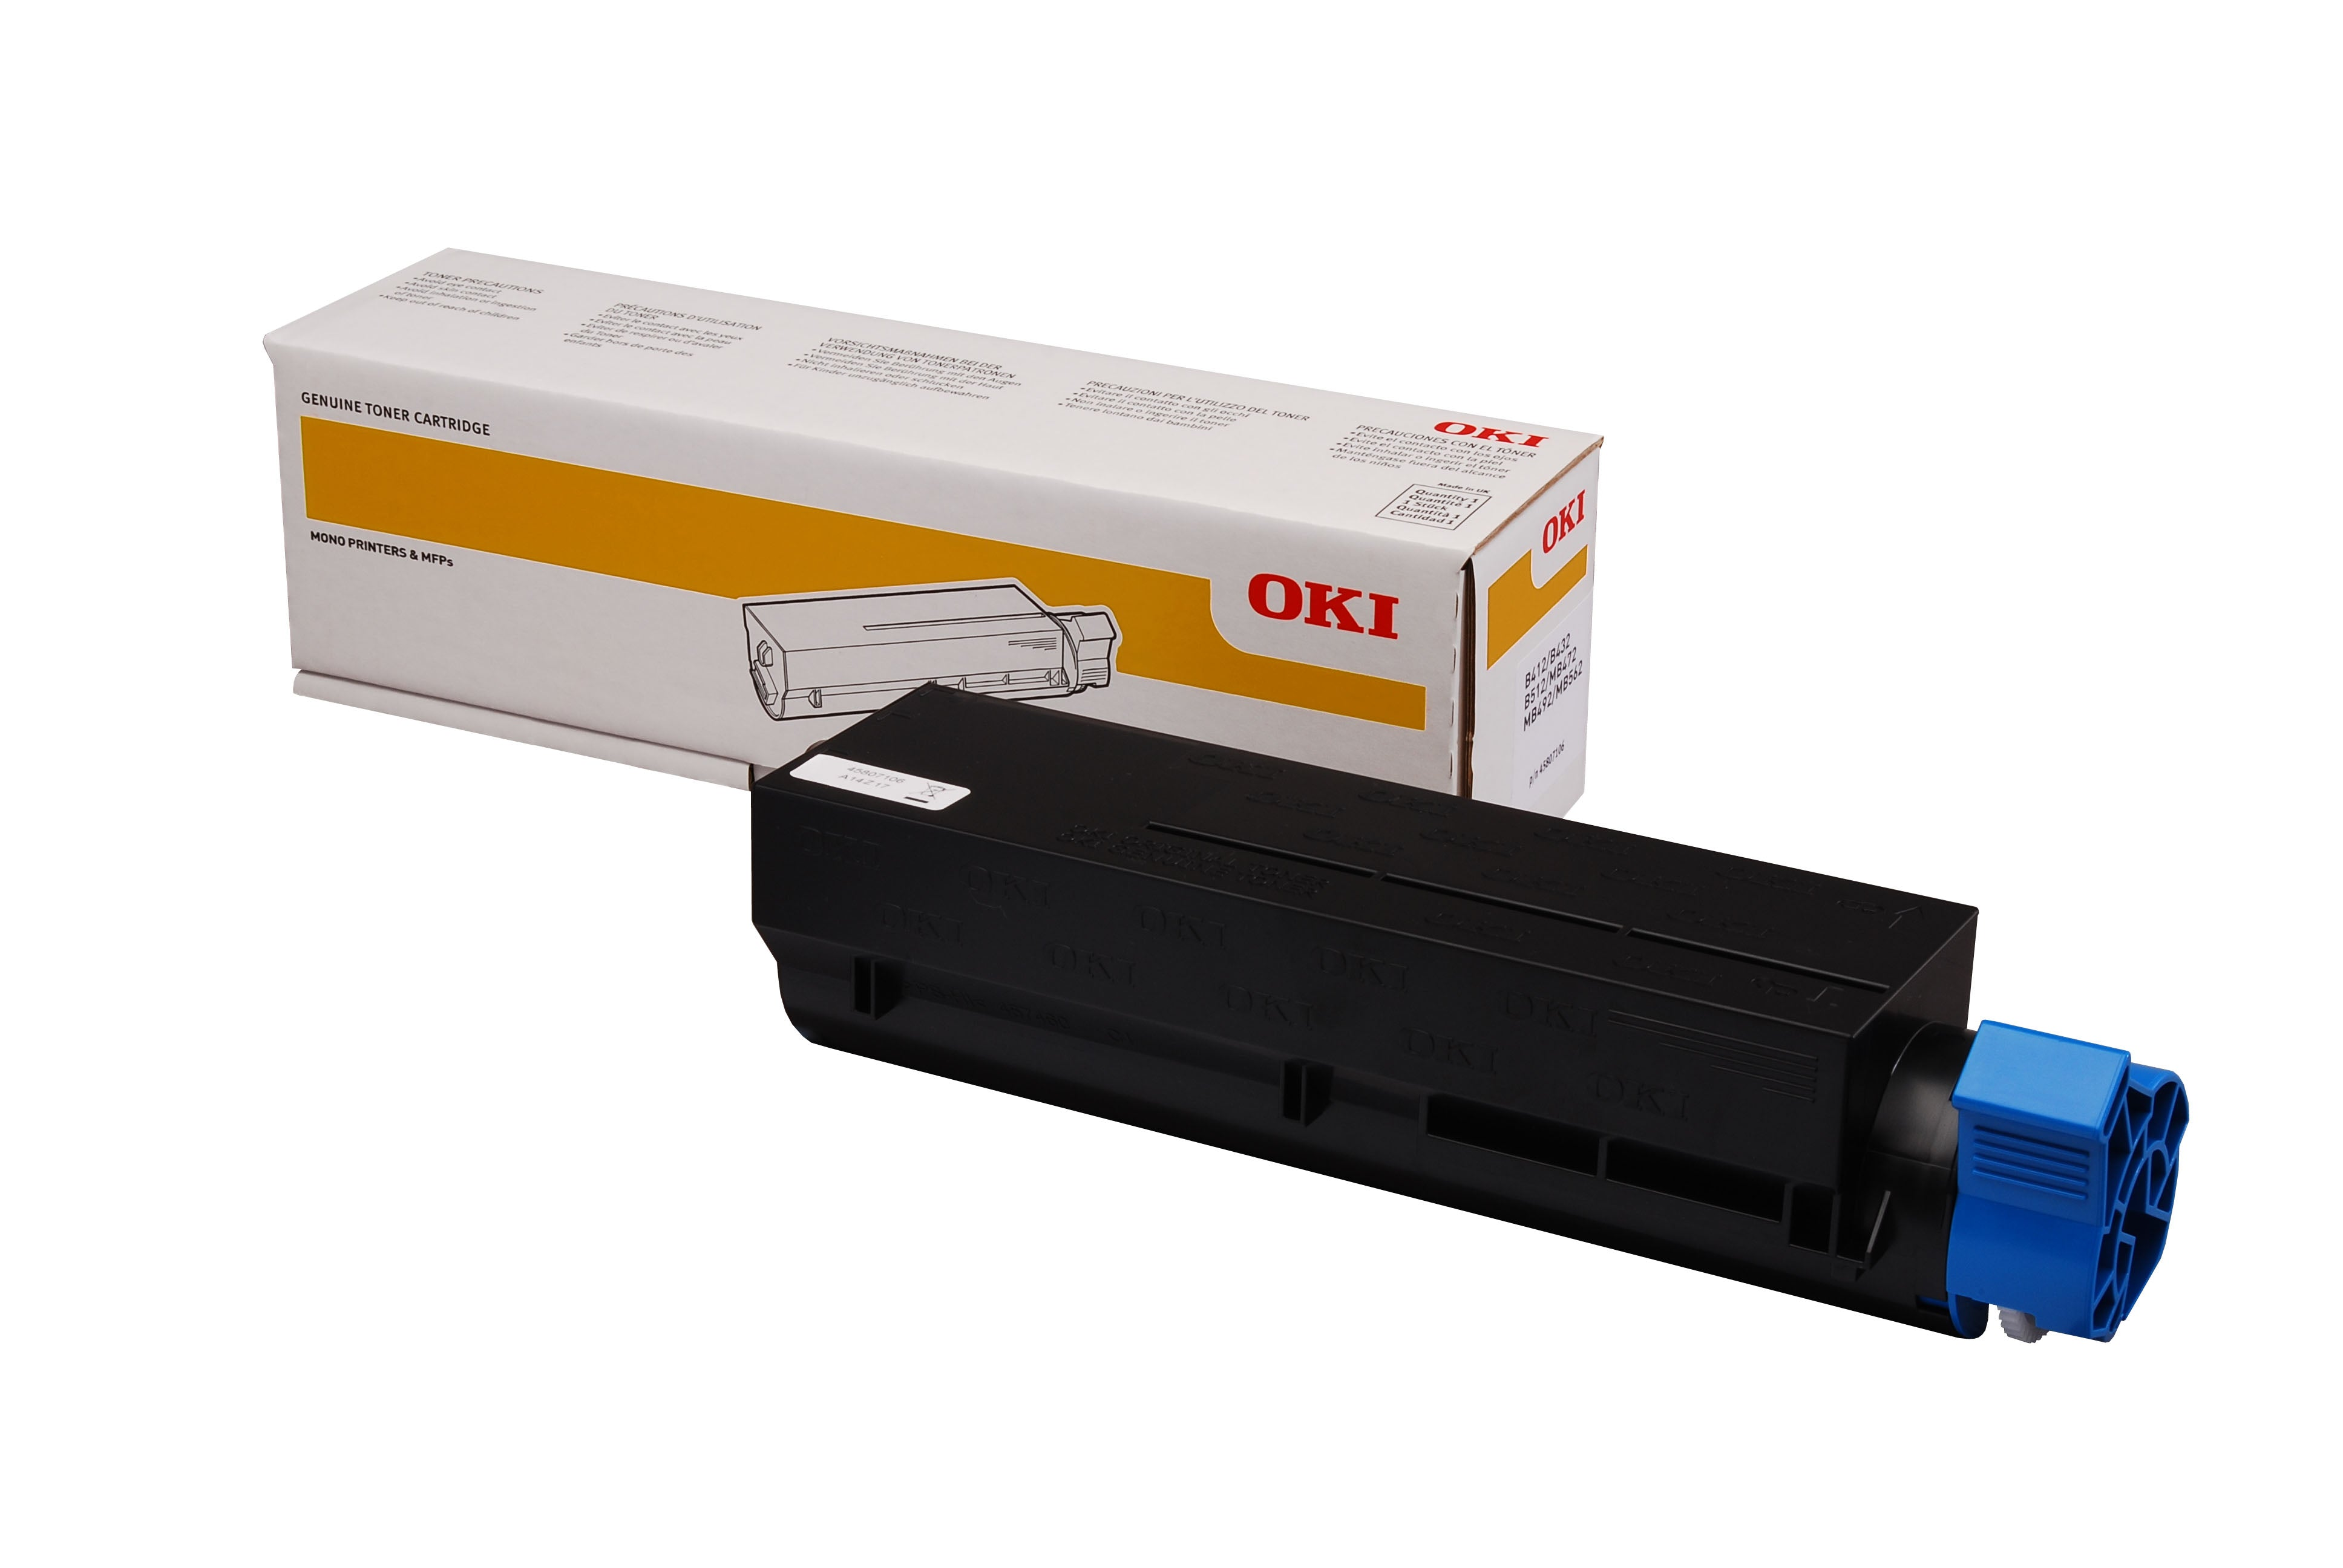 OKI B512dn Black Toner (12,000 Pages) 45807112